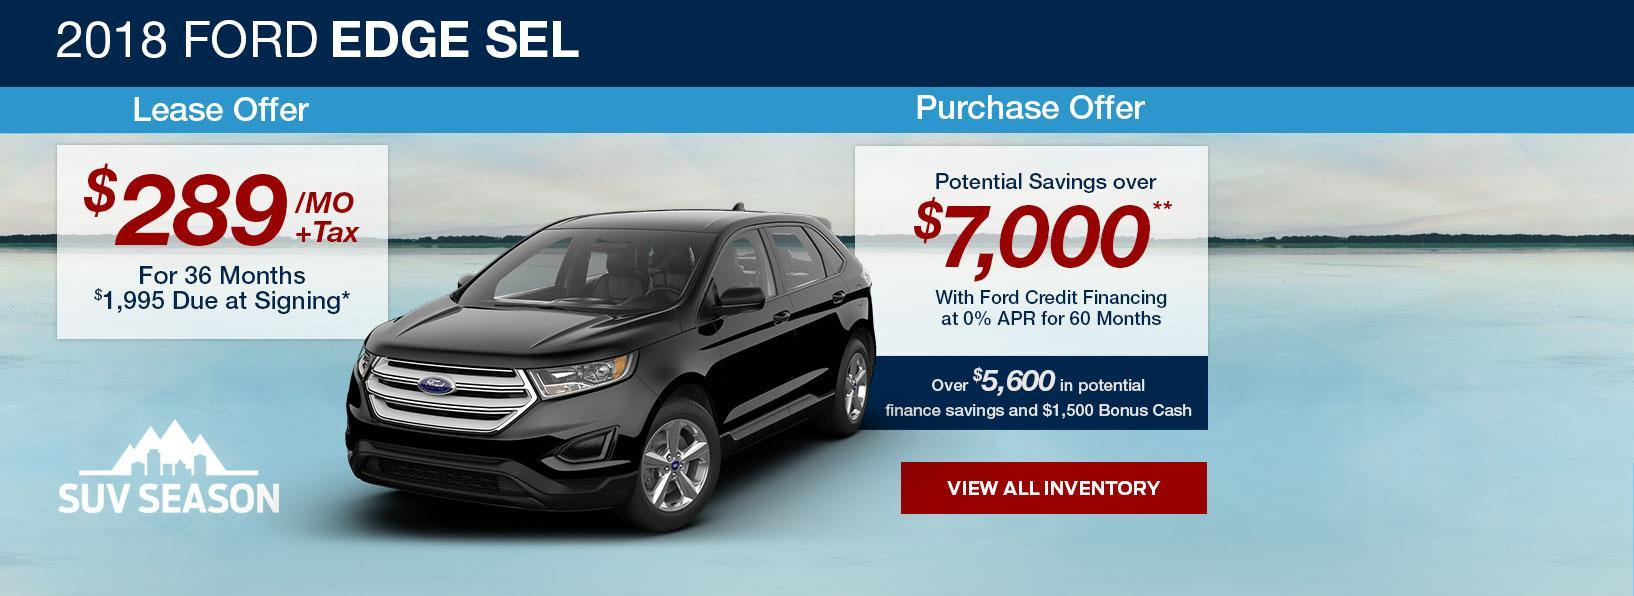 SUV Season at South Bay Ford